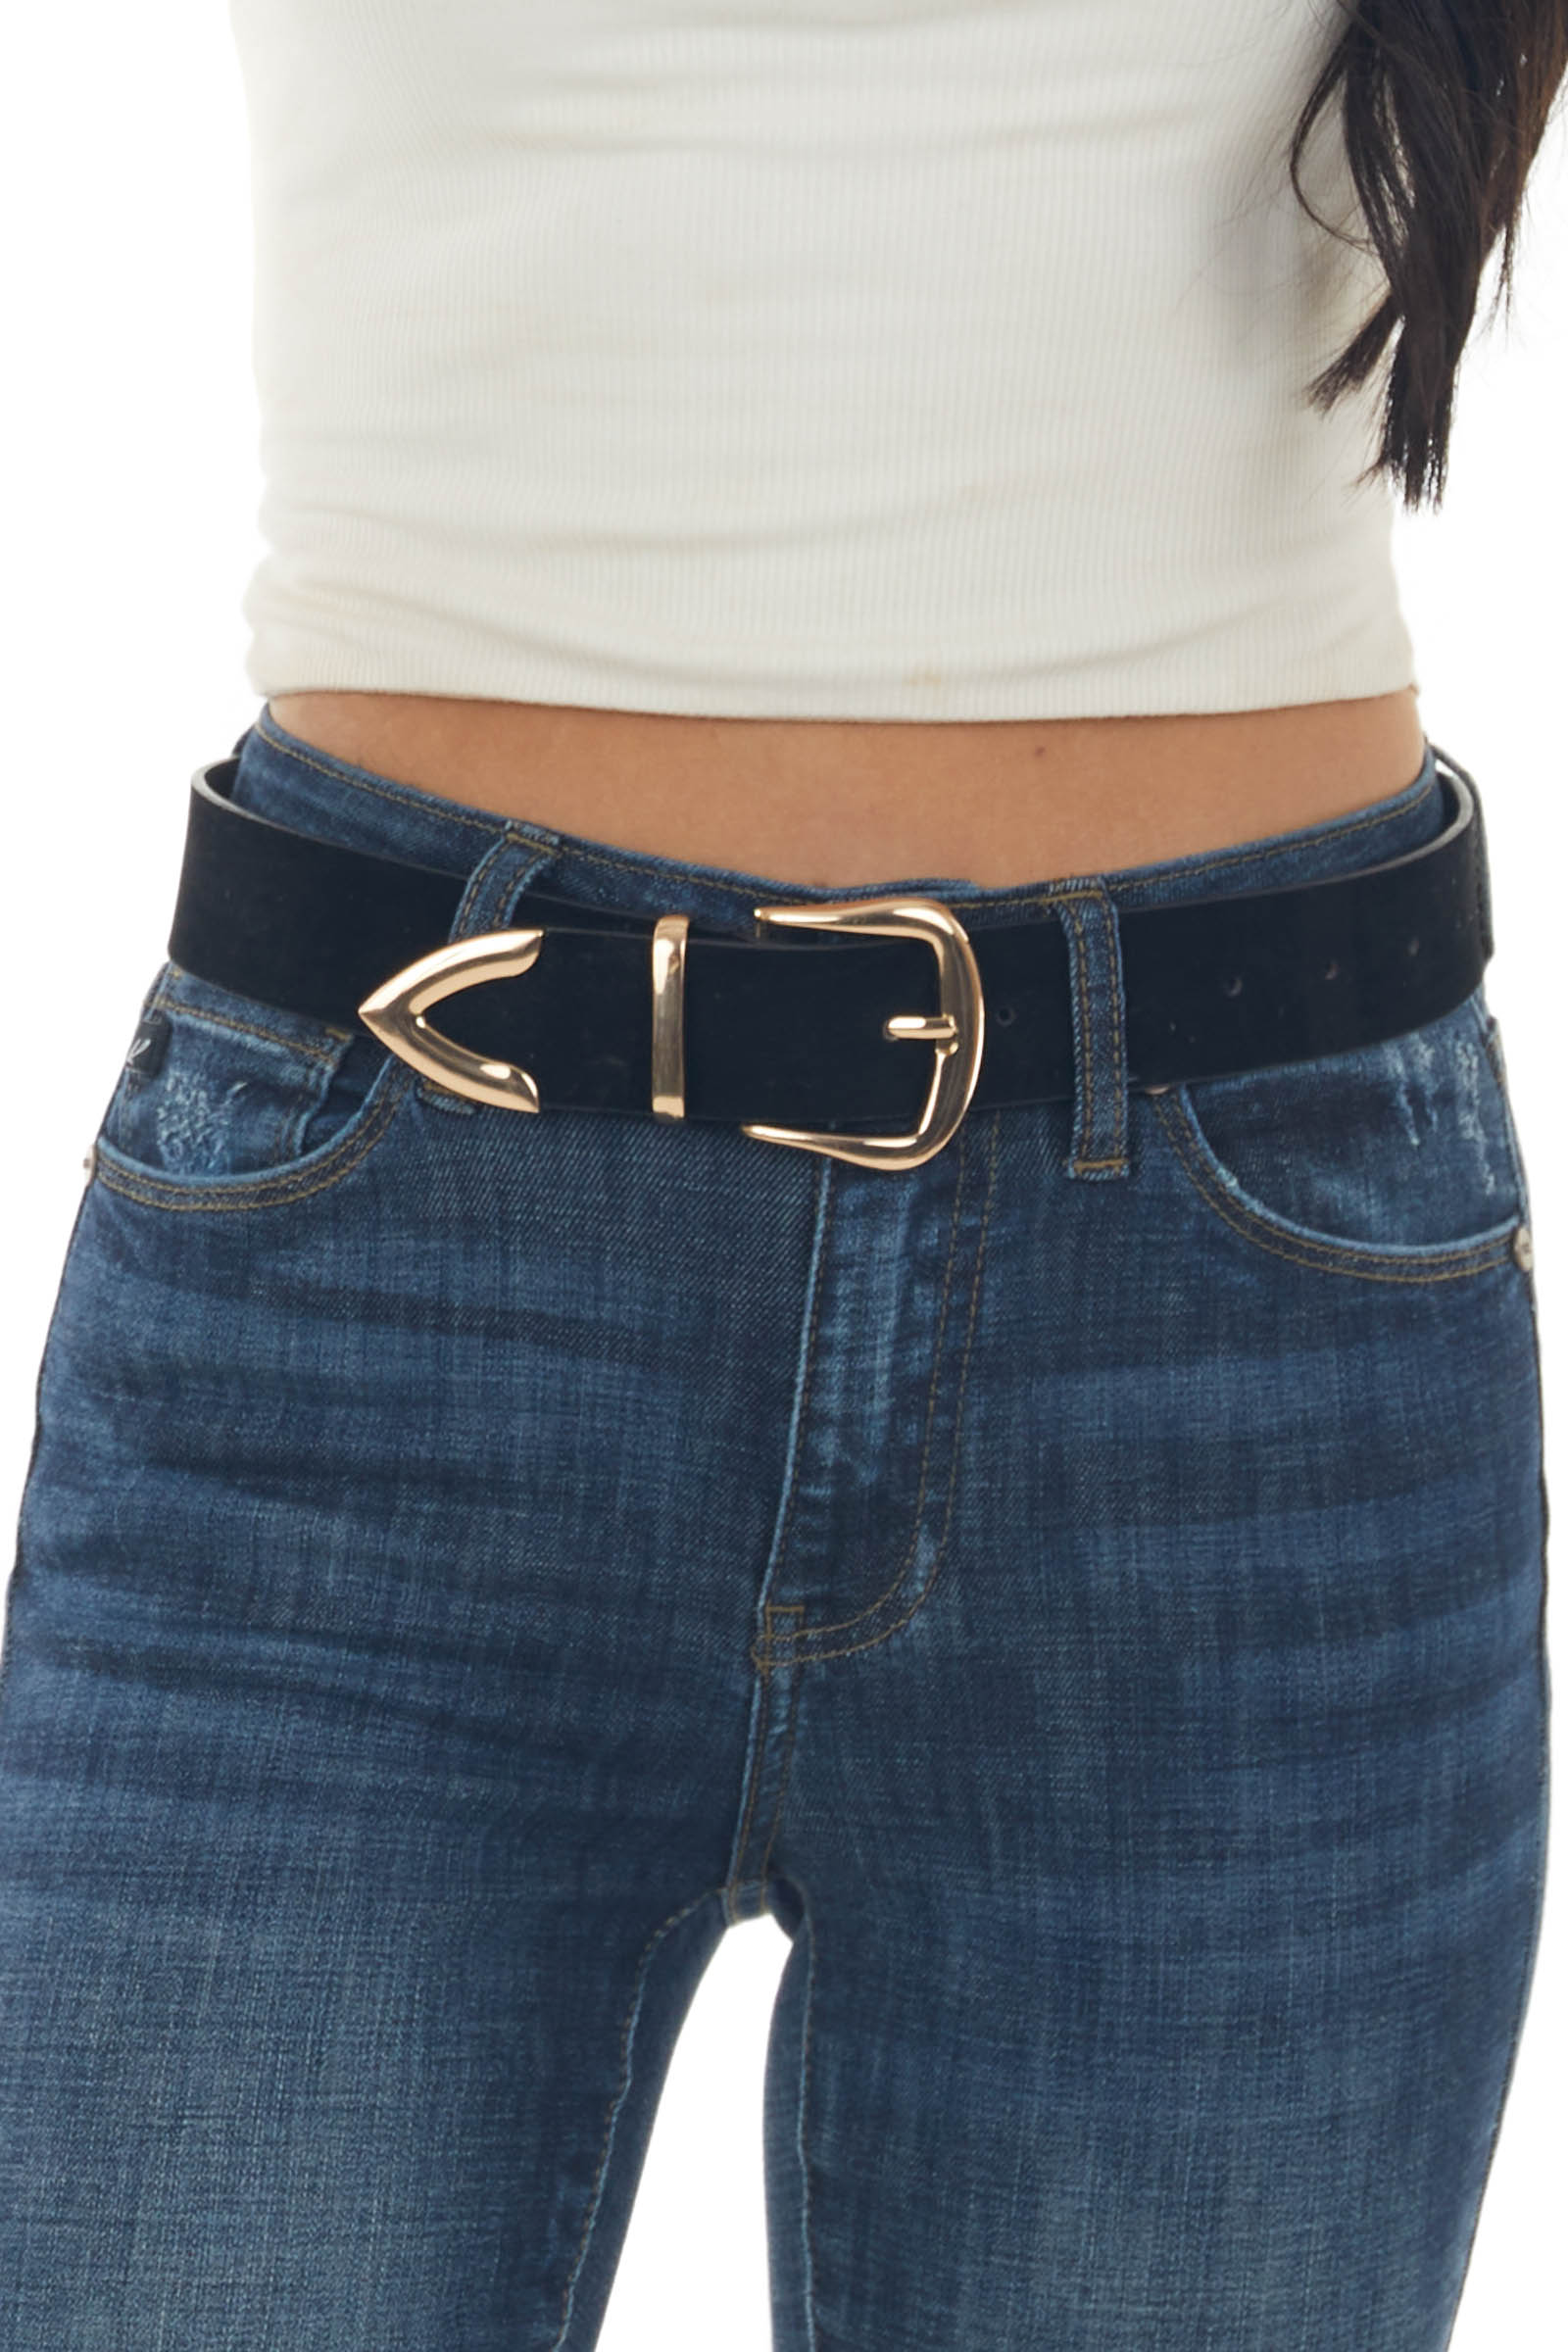 Black Faux Suede Belt with Gold Square Buckle